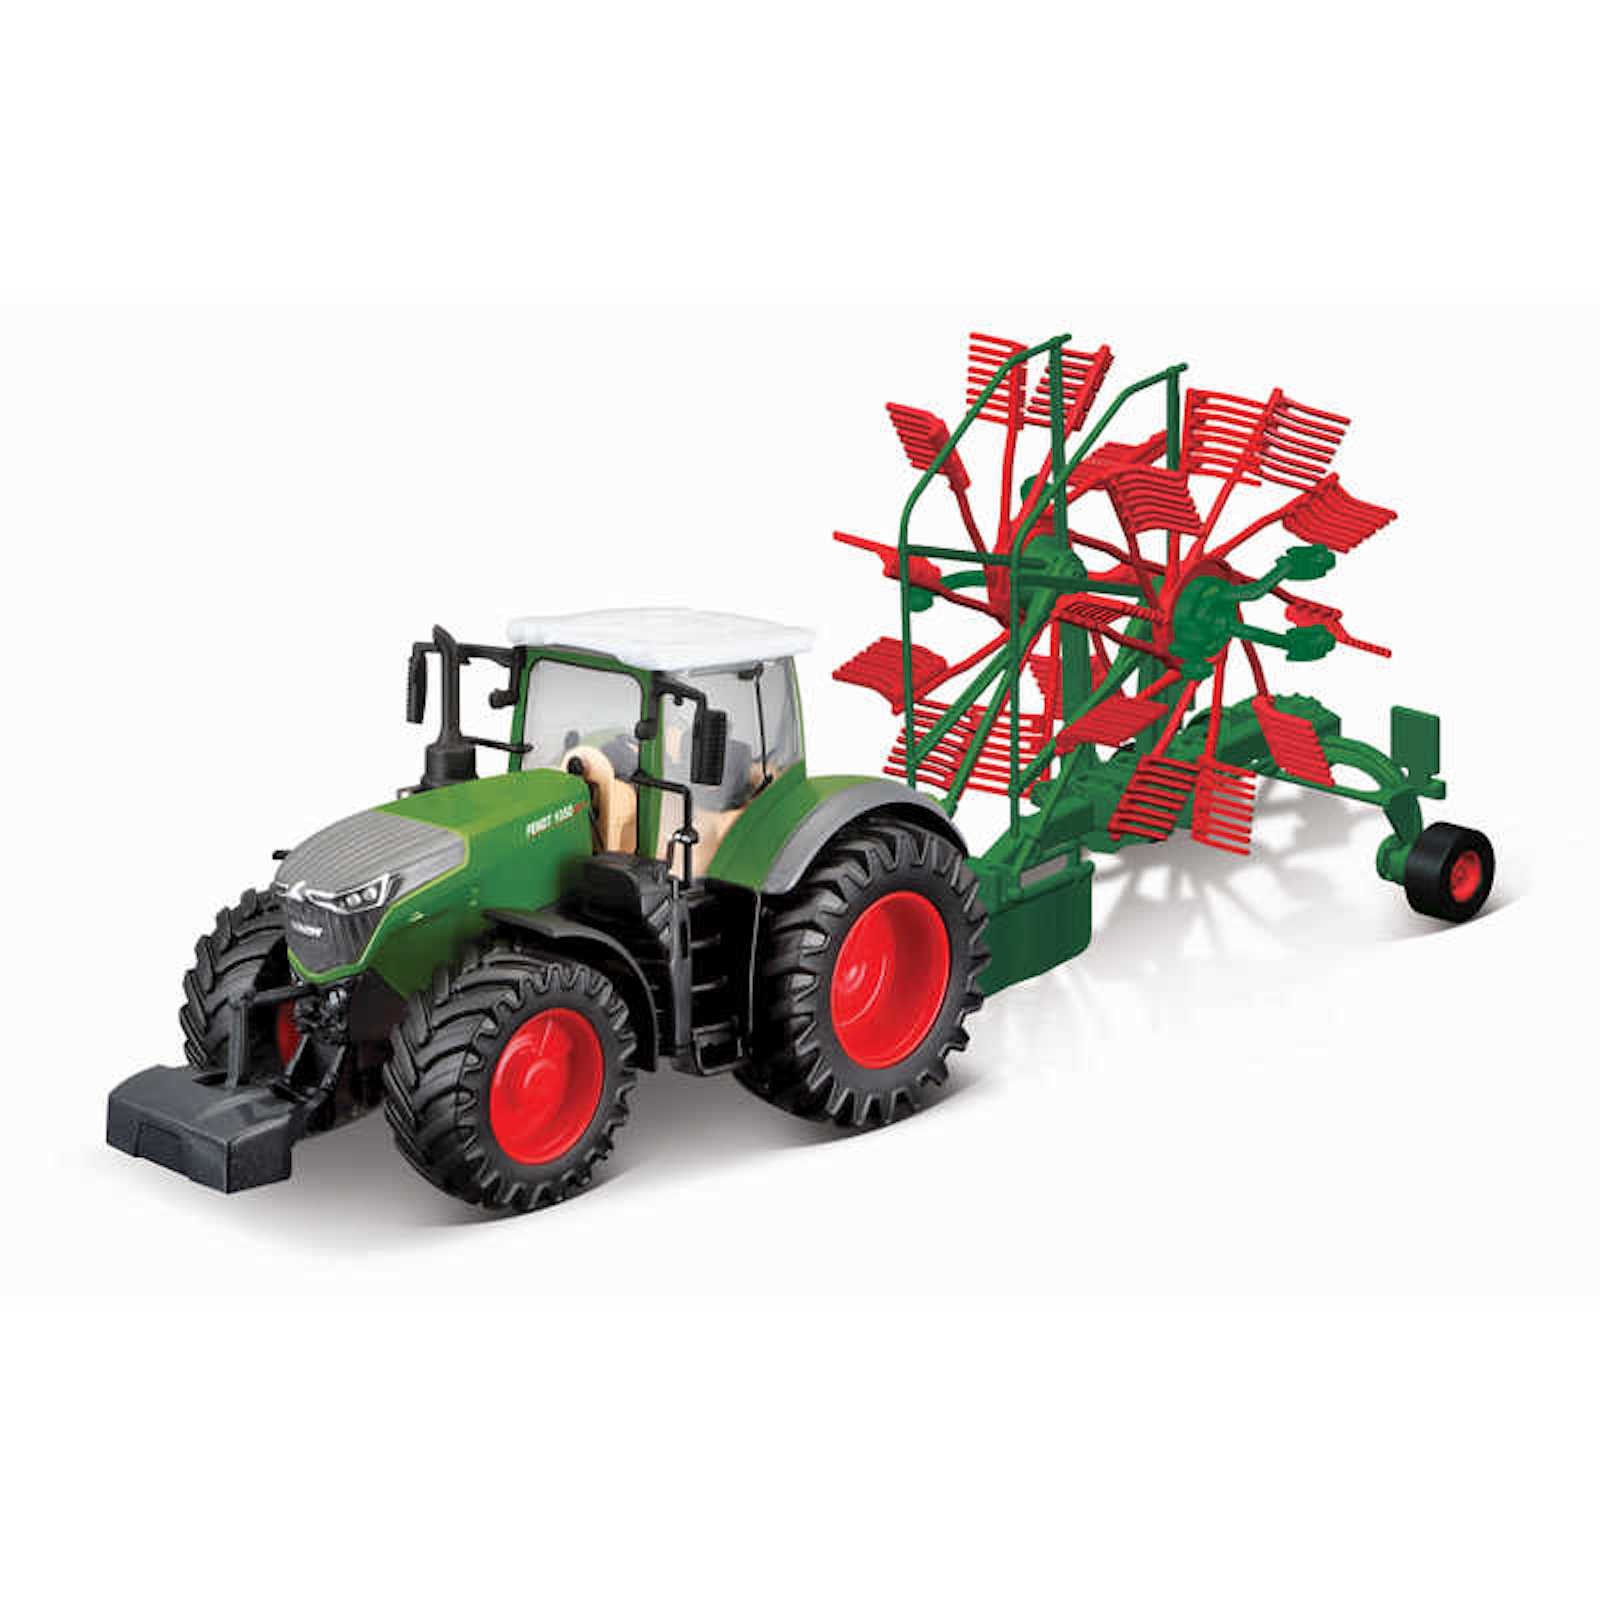 Fendt 1050 Vario Tractor With Whirl Rake Model Toy Childs Kids Dads Birthday Collectors Gift